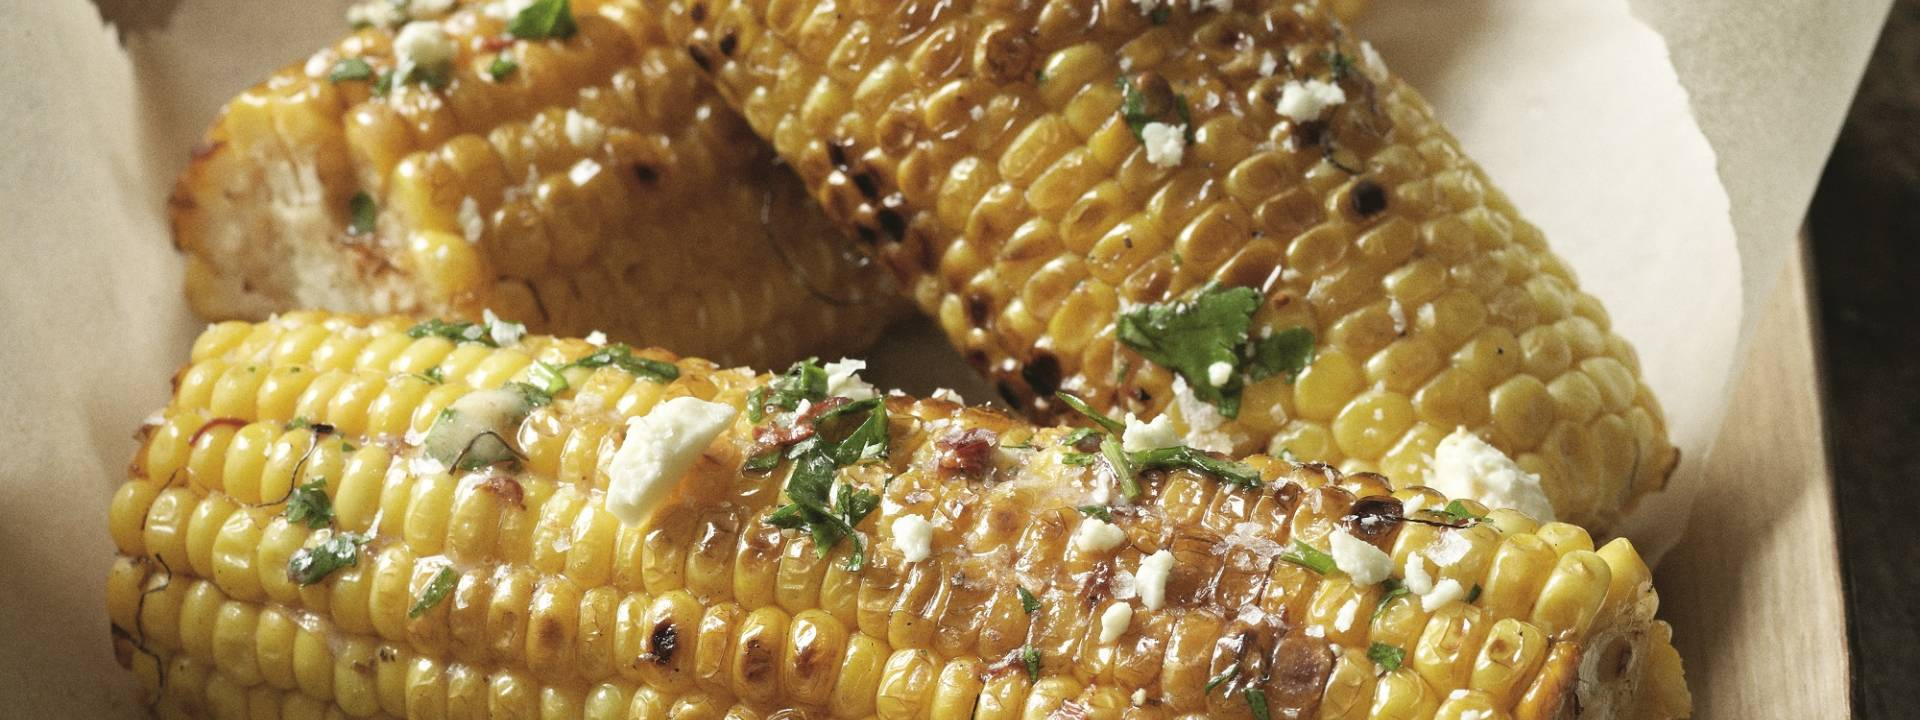 Chipotle Chilli Butter on Corn 554